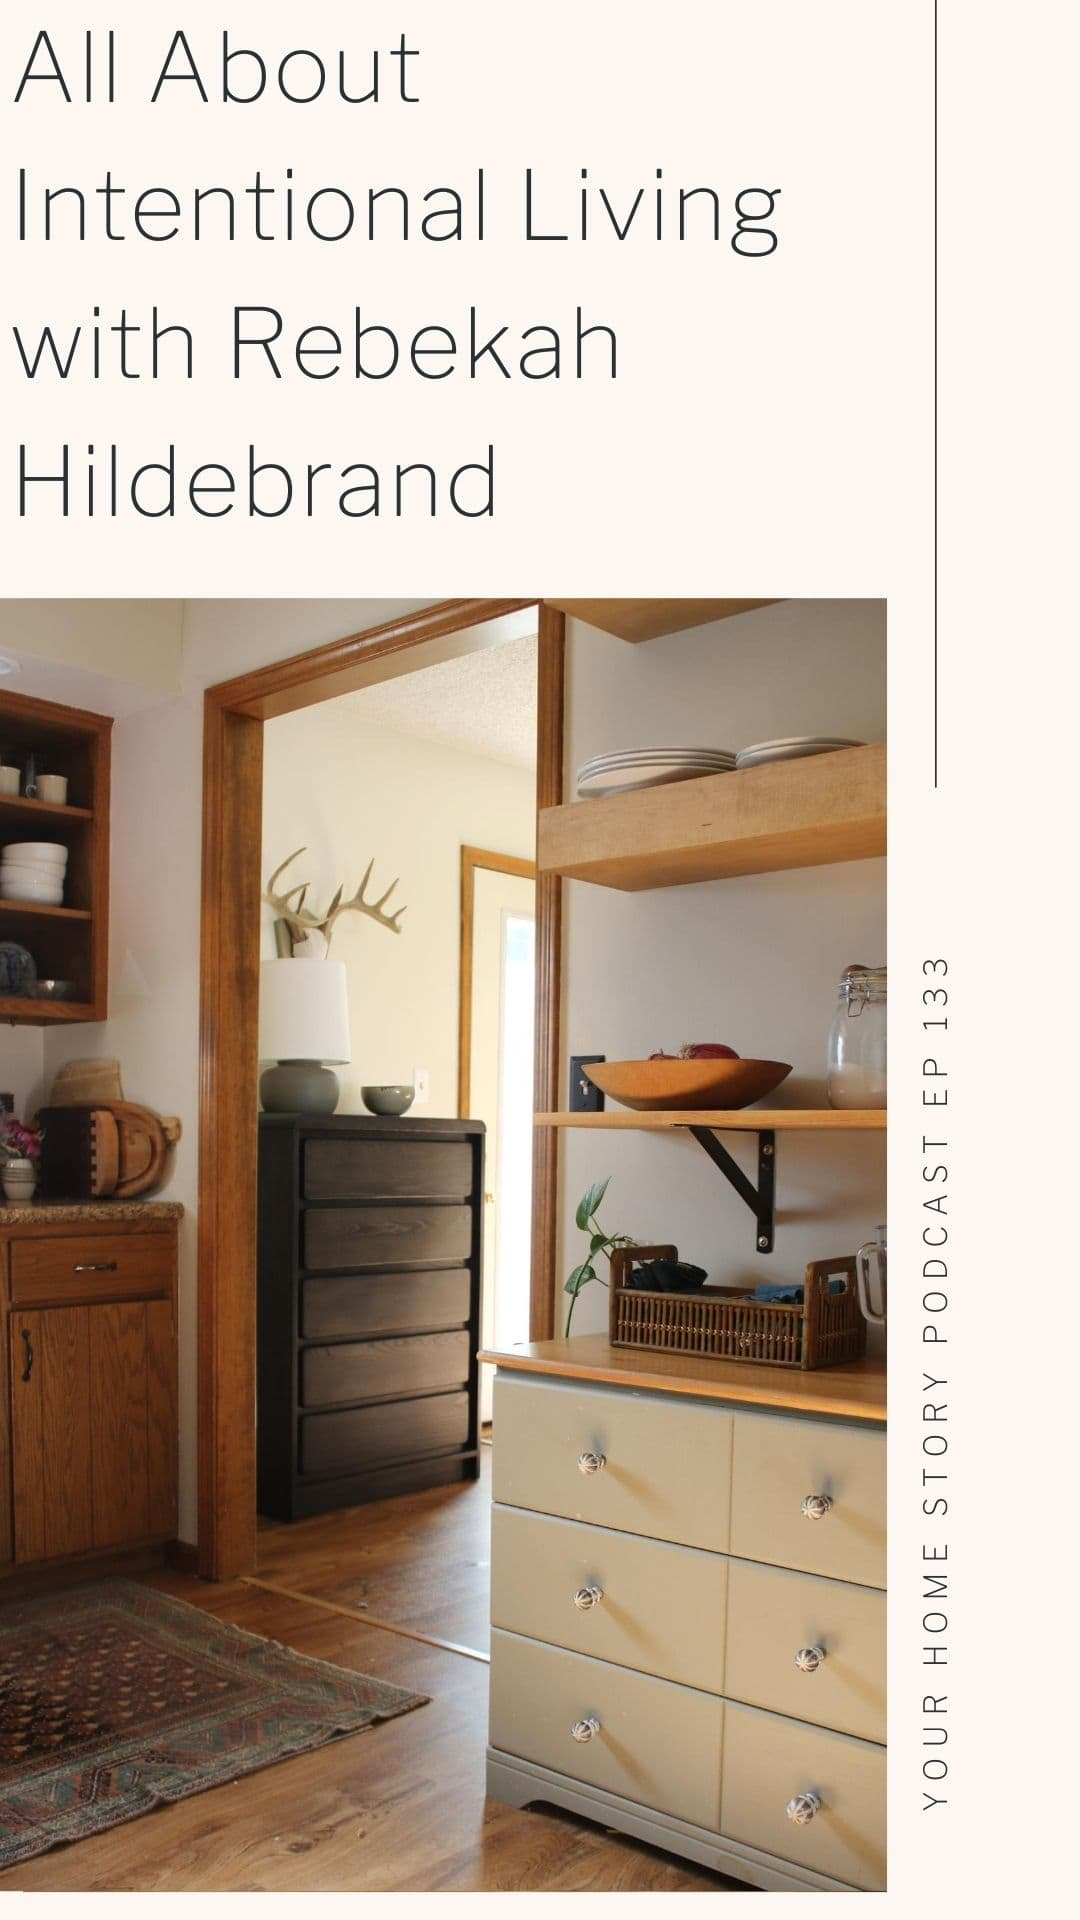 All About Intentional Living featuring a kitchen and storage dresser